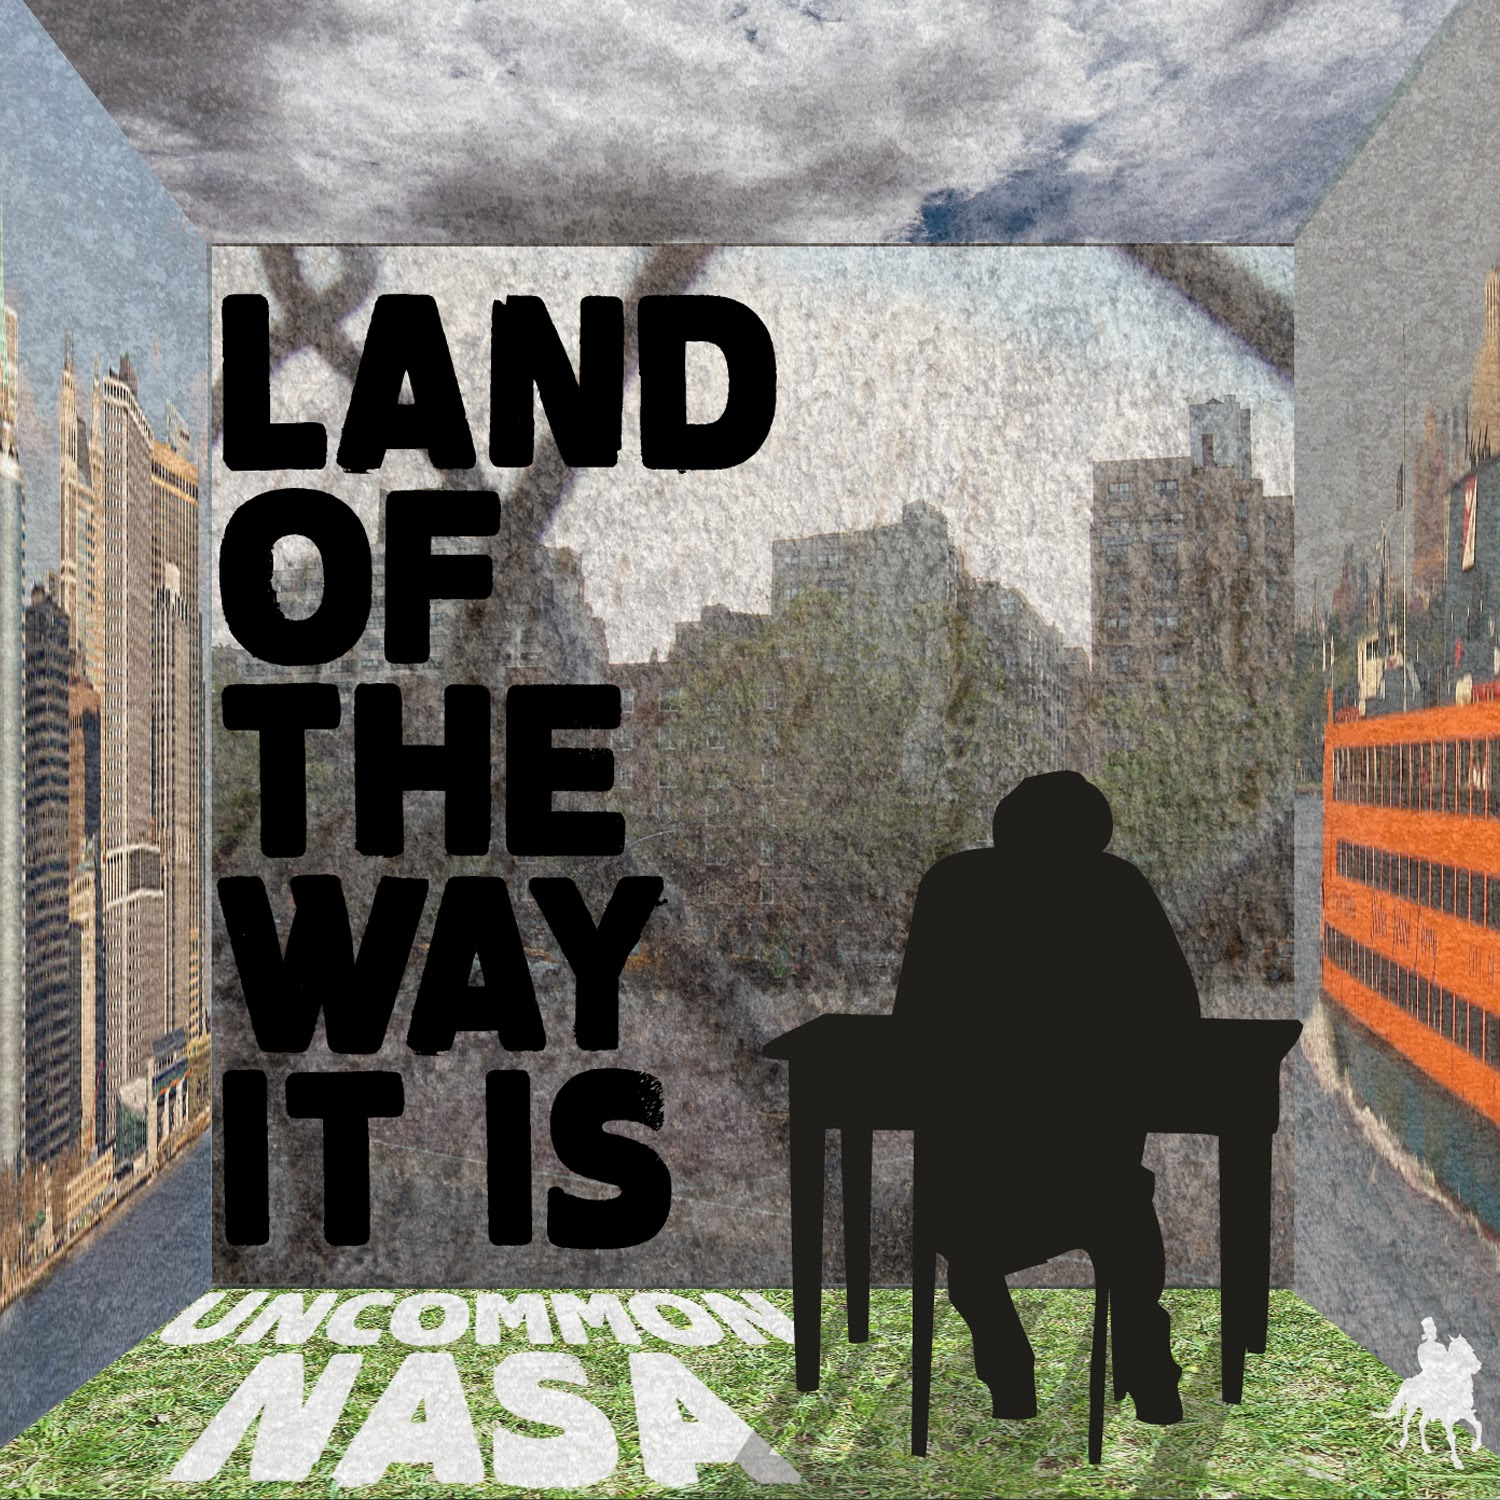 https://uncommonrecords.bandcamp.com/album/land-of-the-way-it-is